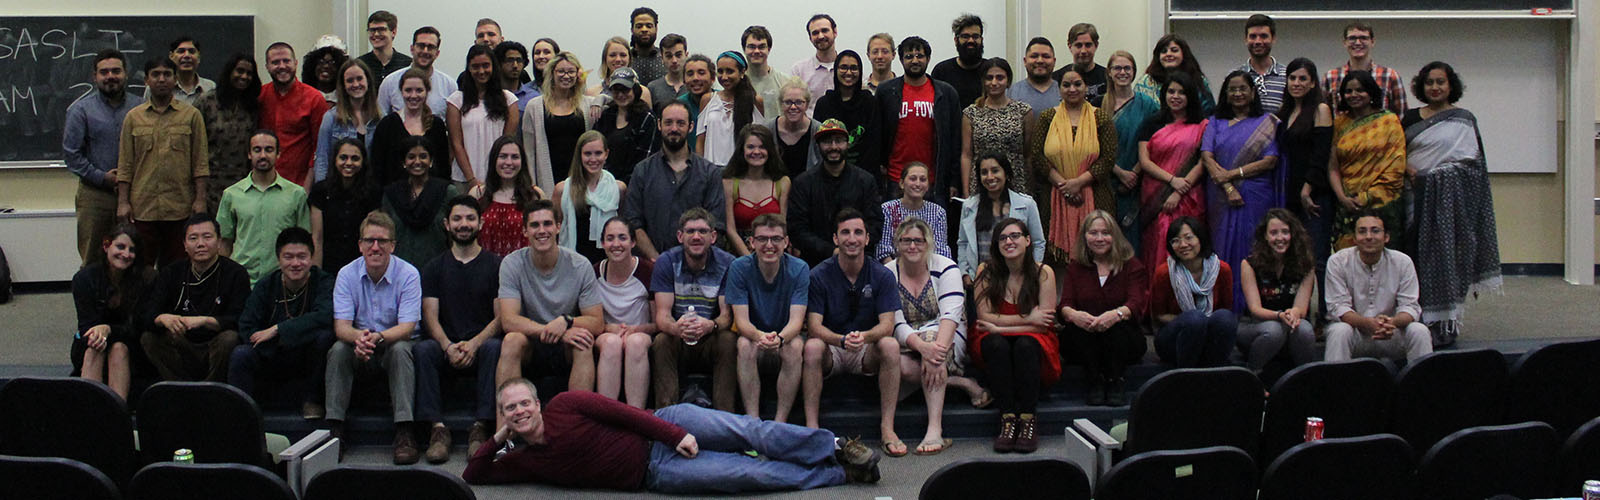 SASLI 2017 Student and Instructor Group Photo